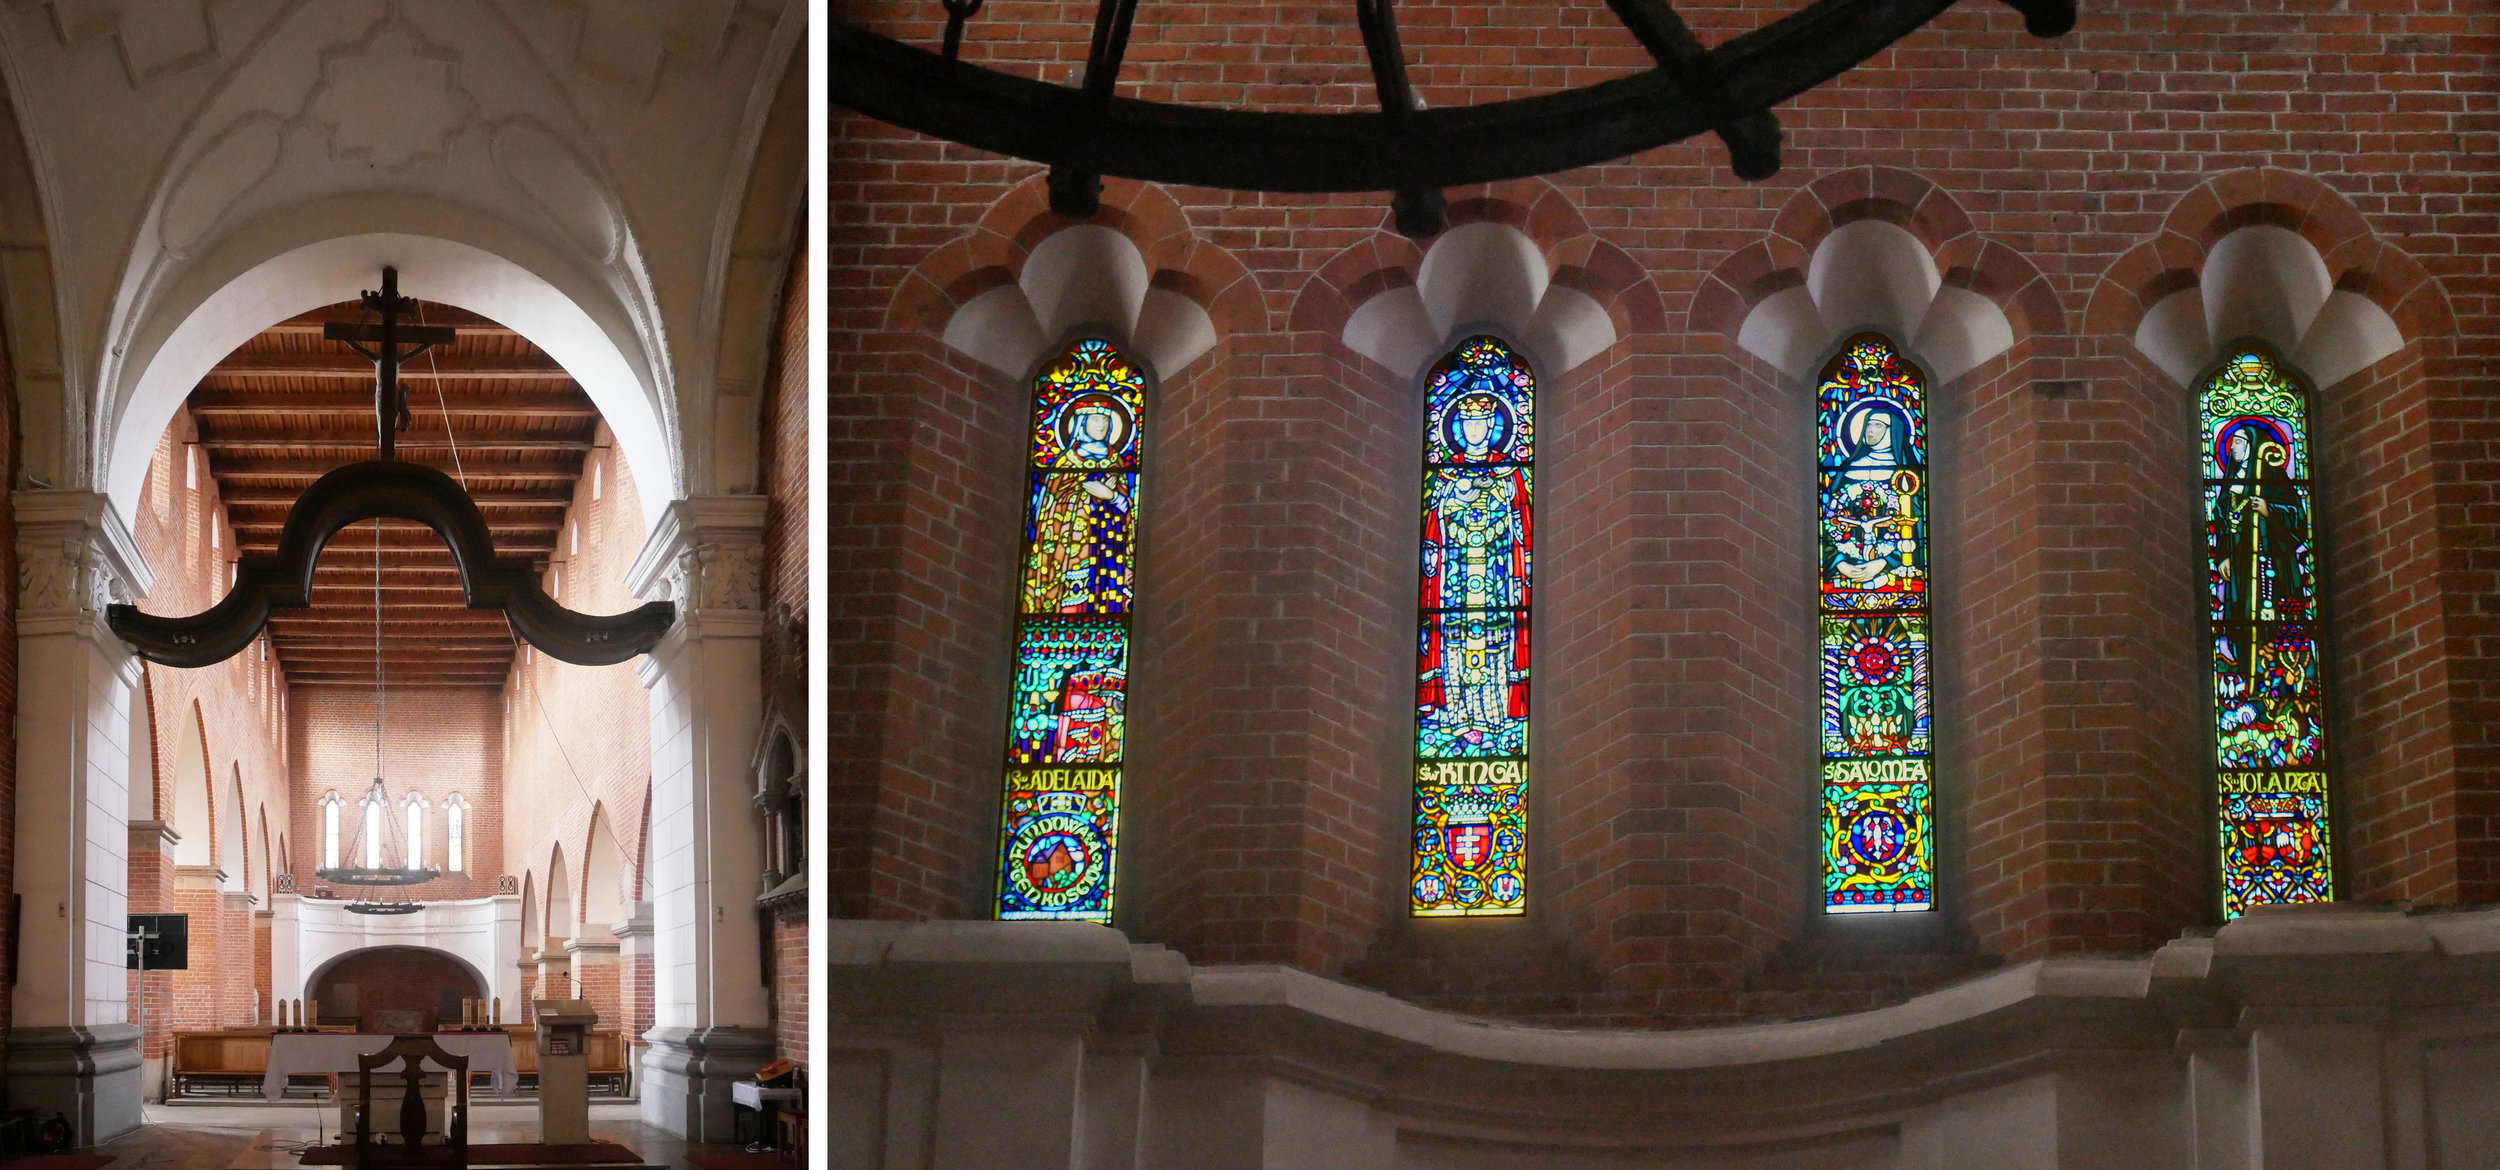 Views towards the west wall inside St. Jacobus with four figure windows and gorgeous white canopy shapes above.